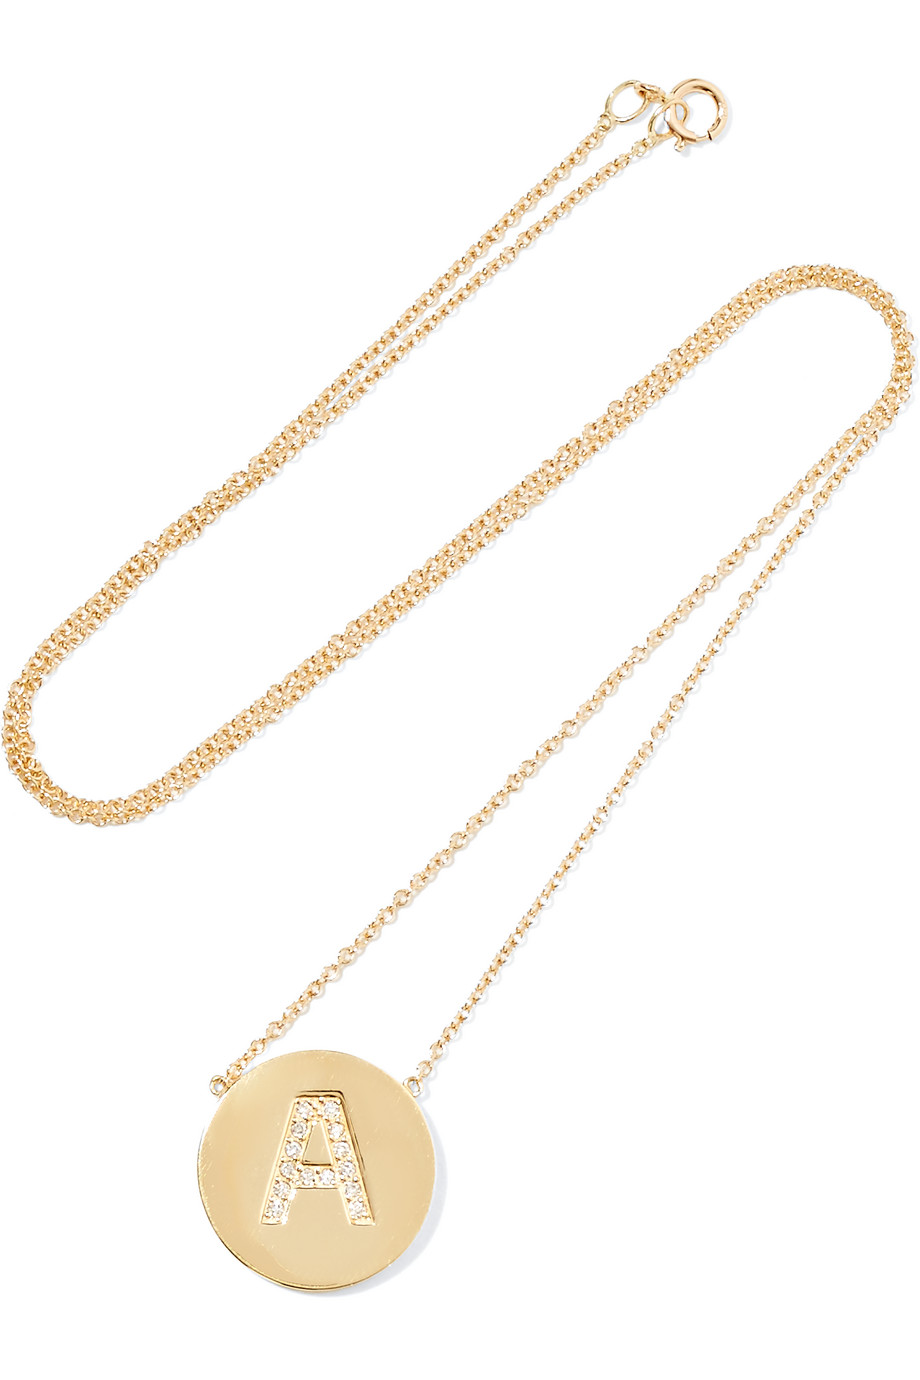 Jennifer Meyer Letter 18-Karat Gold Diamond Necklace, Women's, Size: T